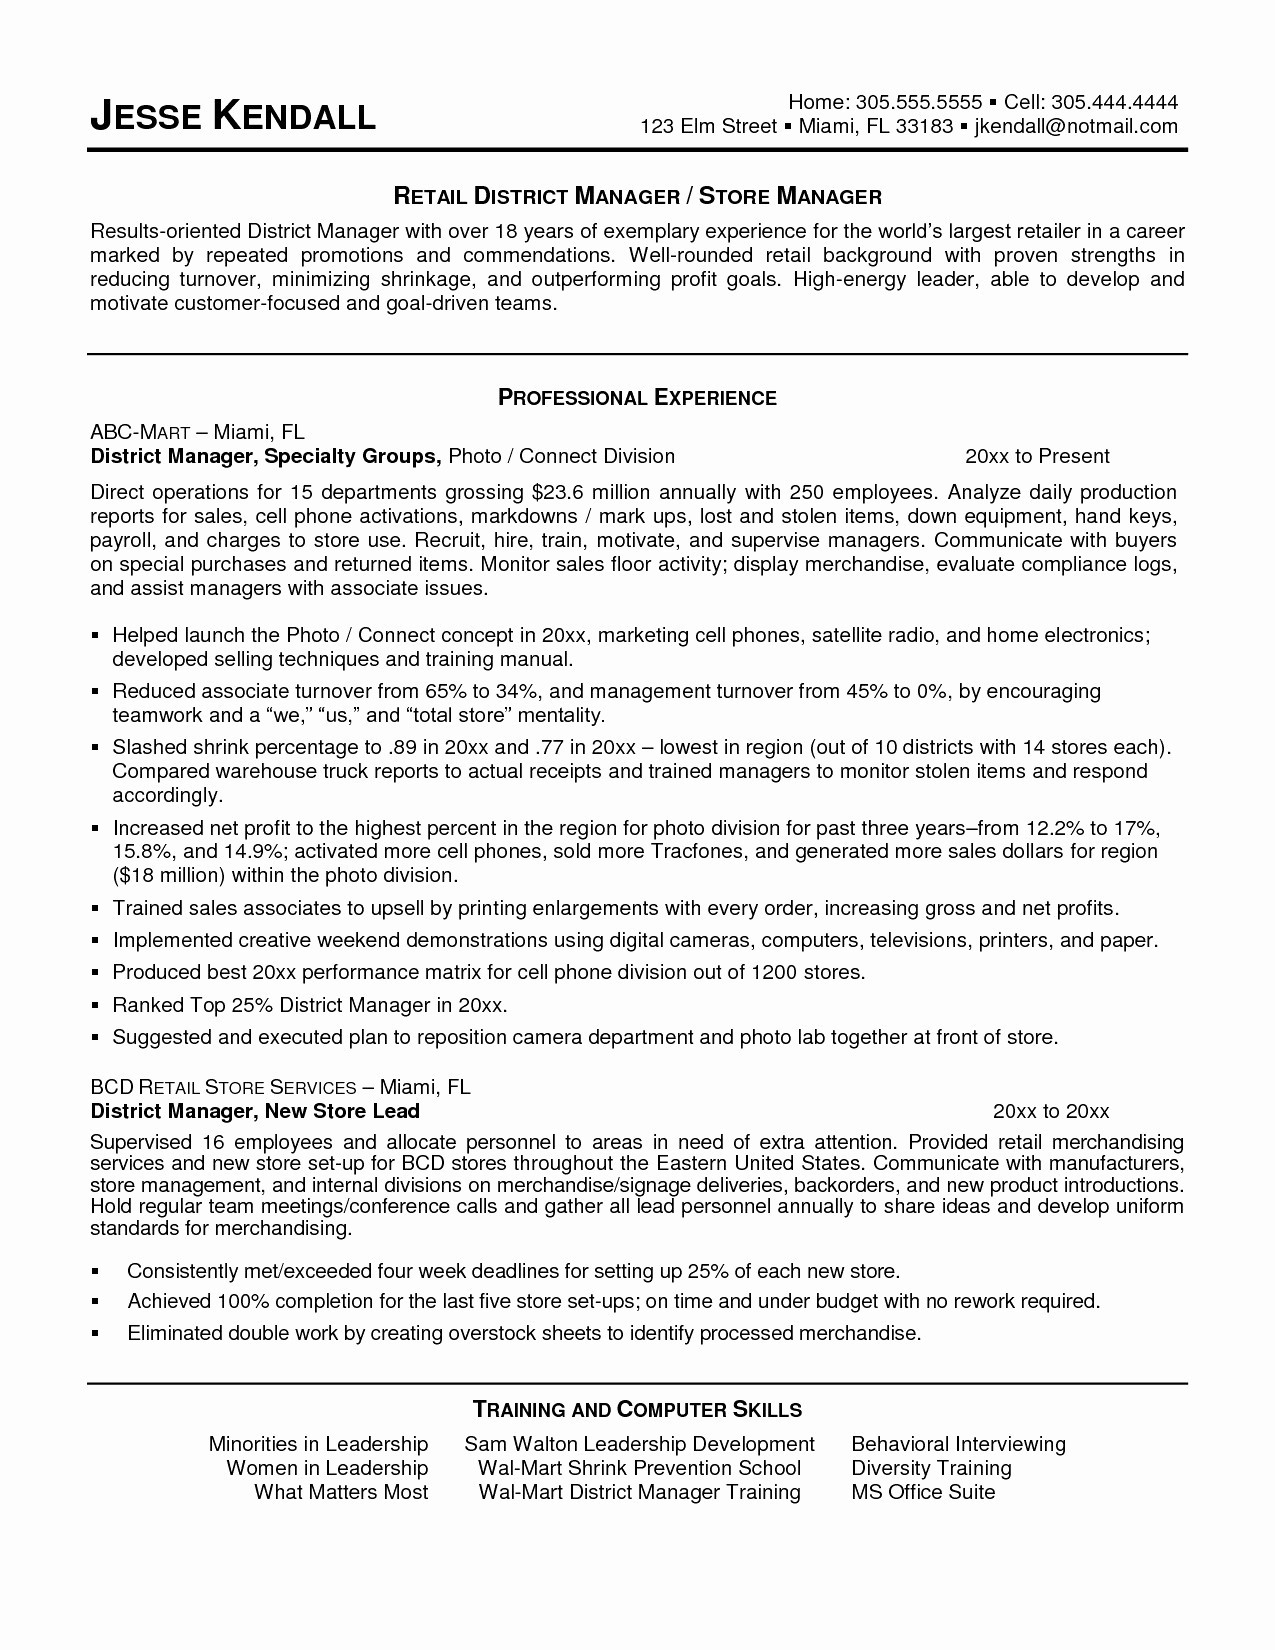 fast food resume Collection-Fast Food Resume Fresh 21 Fresh I Need A Resume Fast Fast Food Resume Fresh 2-d